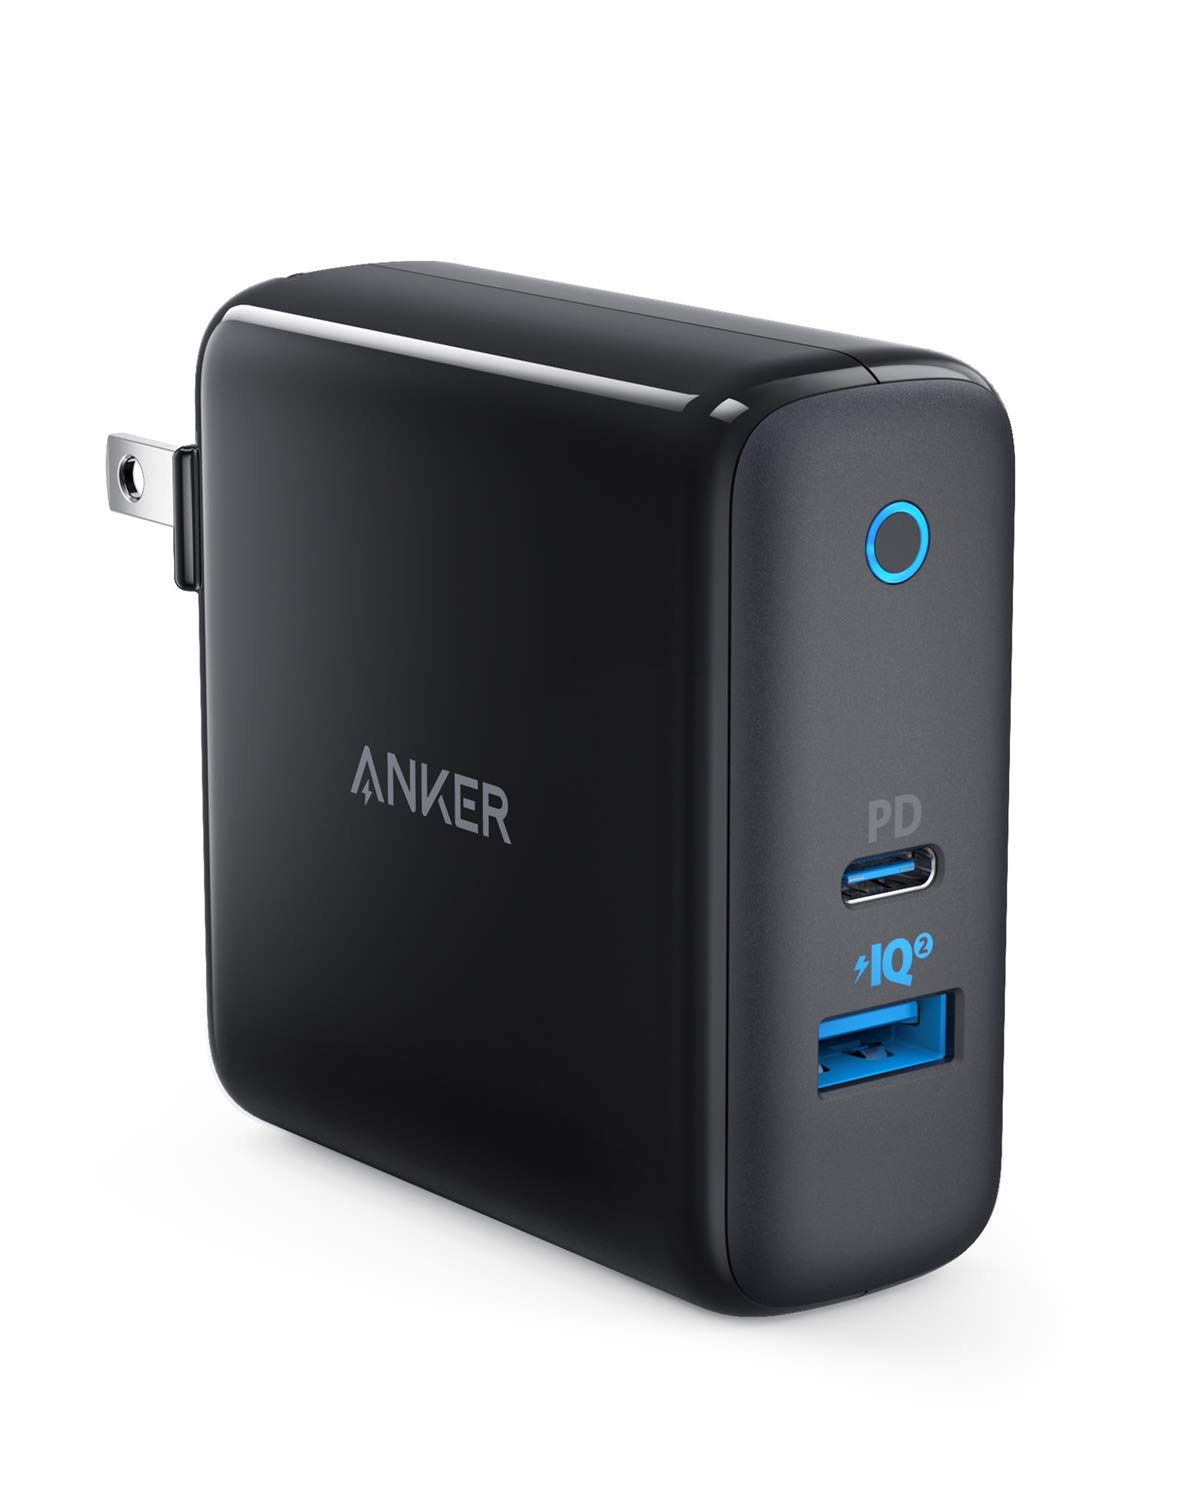 Anker PowerPort II UL Certified 49.5W Wall Charger with Foldable Plug One 30W Power Delivery Port for MacBook Air//iPad Pro 2018 USB C Charger PowerIQ 2.0 for S10//S9 and More iPhone XS//Max//XR//X//8//+